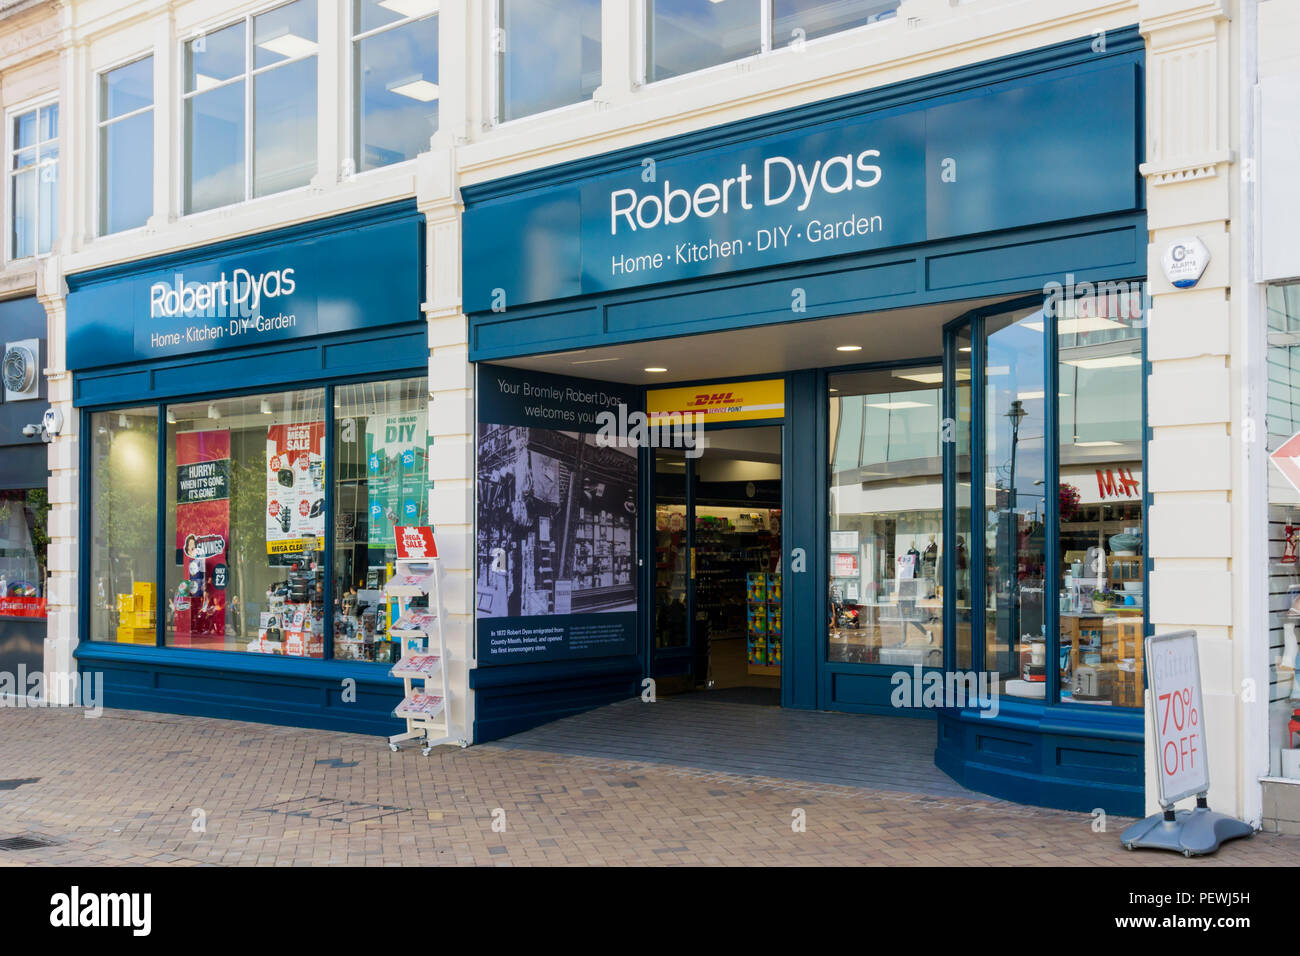 A branch of Robert Dyas hardware shops. - Stock Image